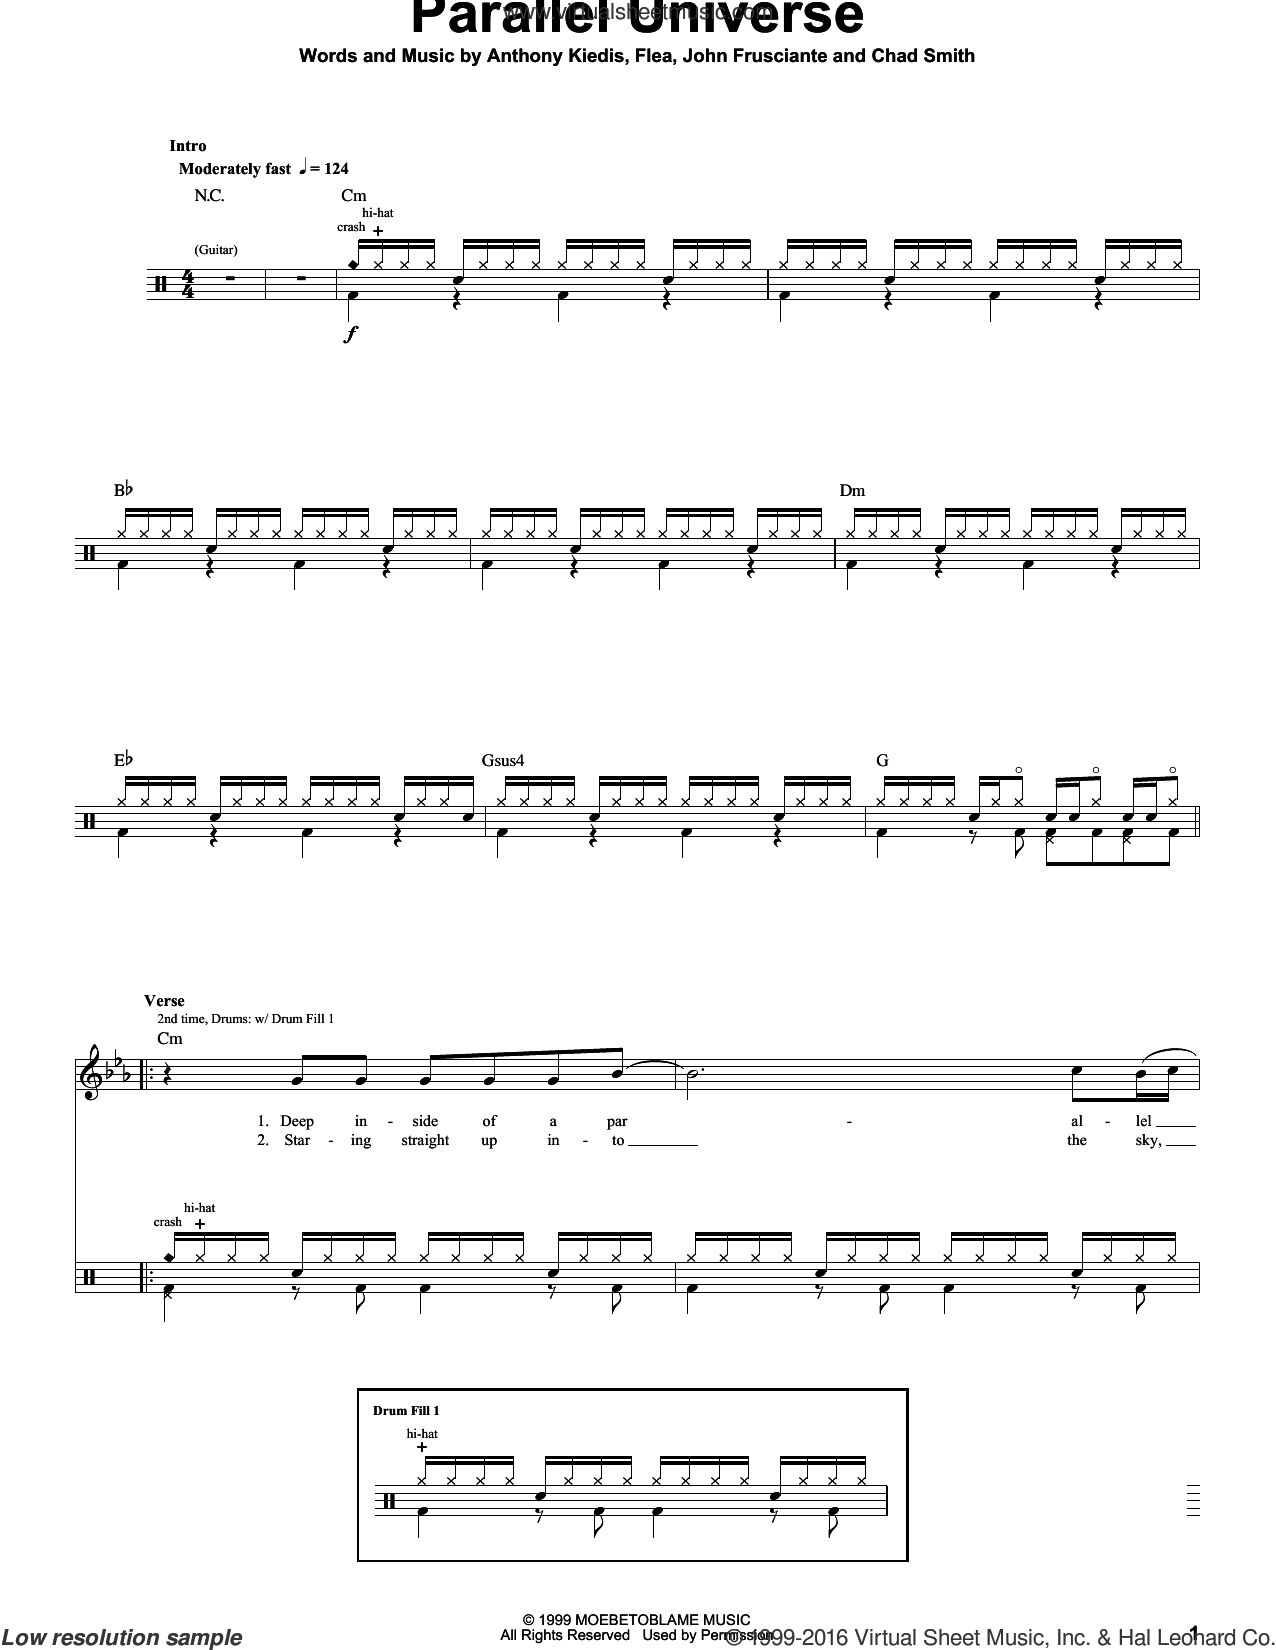 Parallel Universe sheet music for drums by Red Hot Chili Peppers, Anthony Kiedis, Chad Smith, Flea and John Frusciante, intermediate skill level